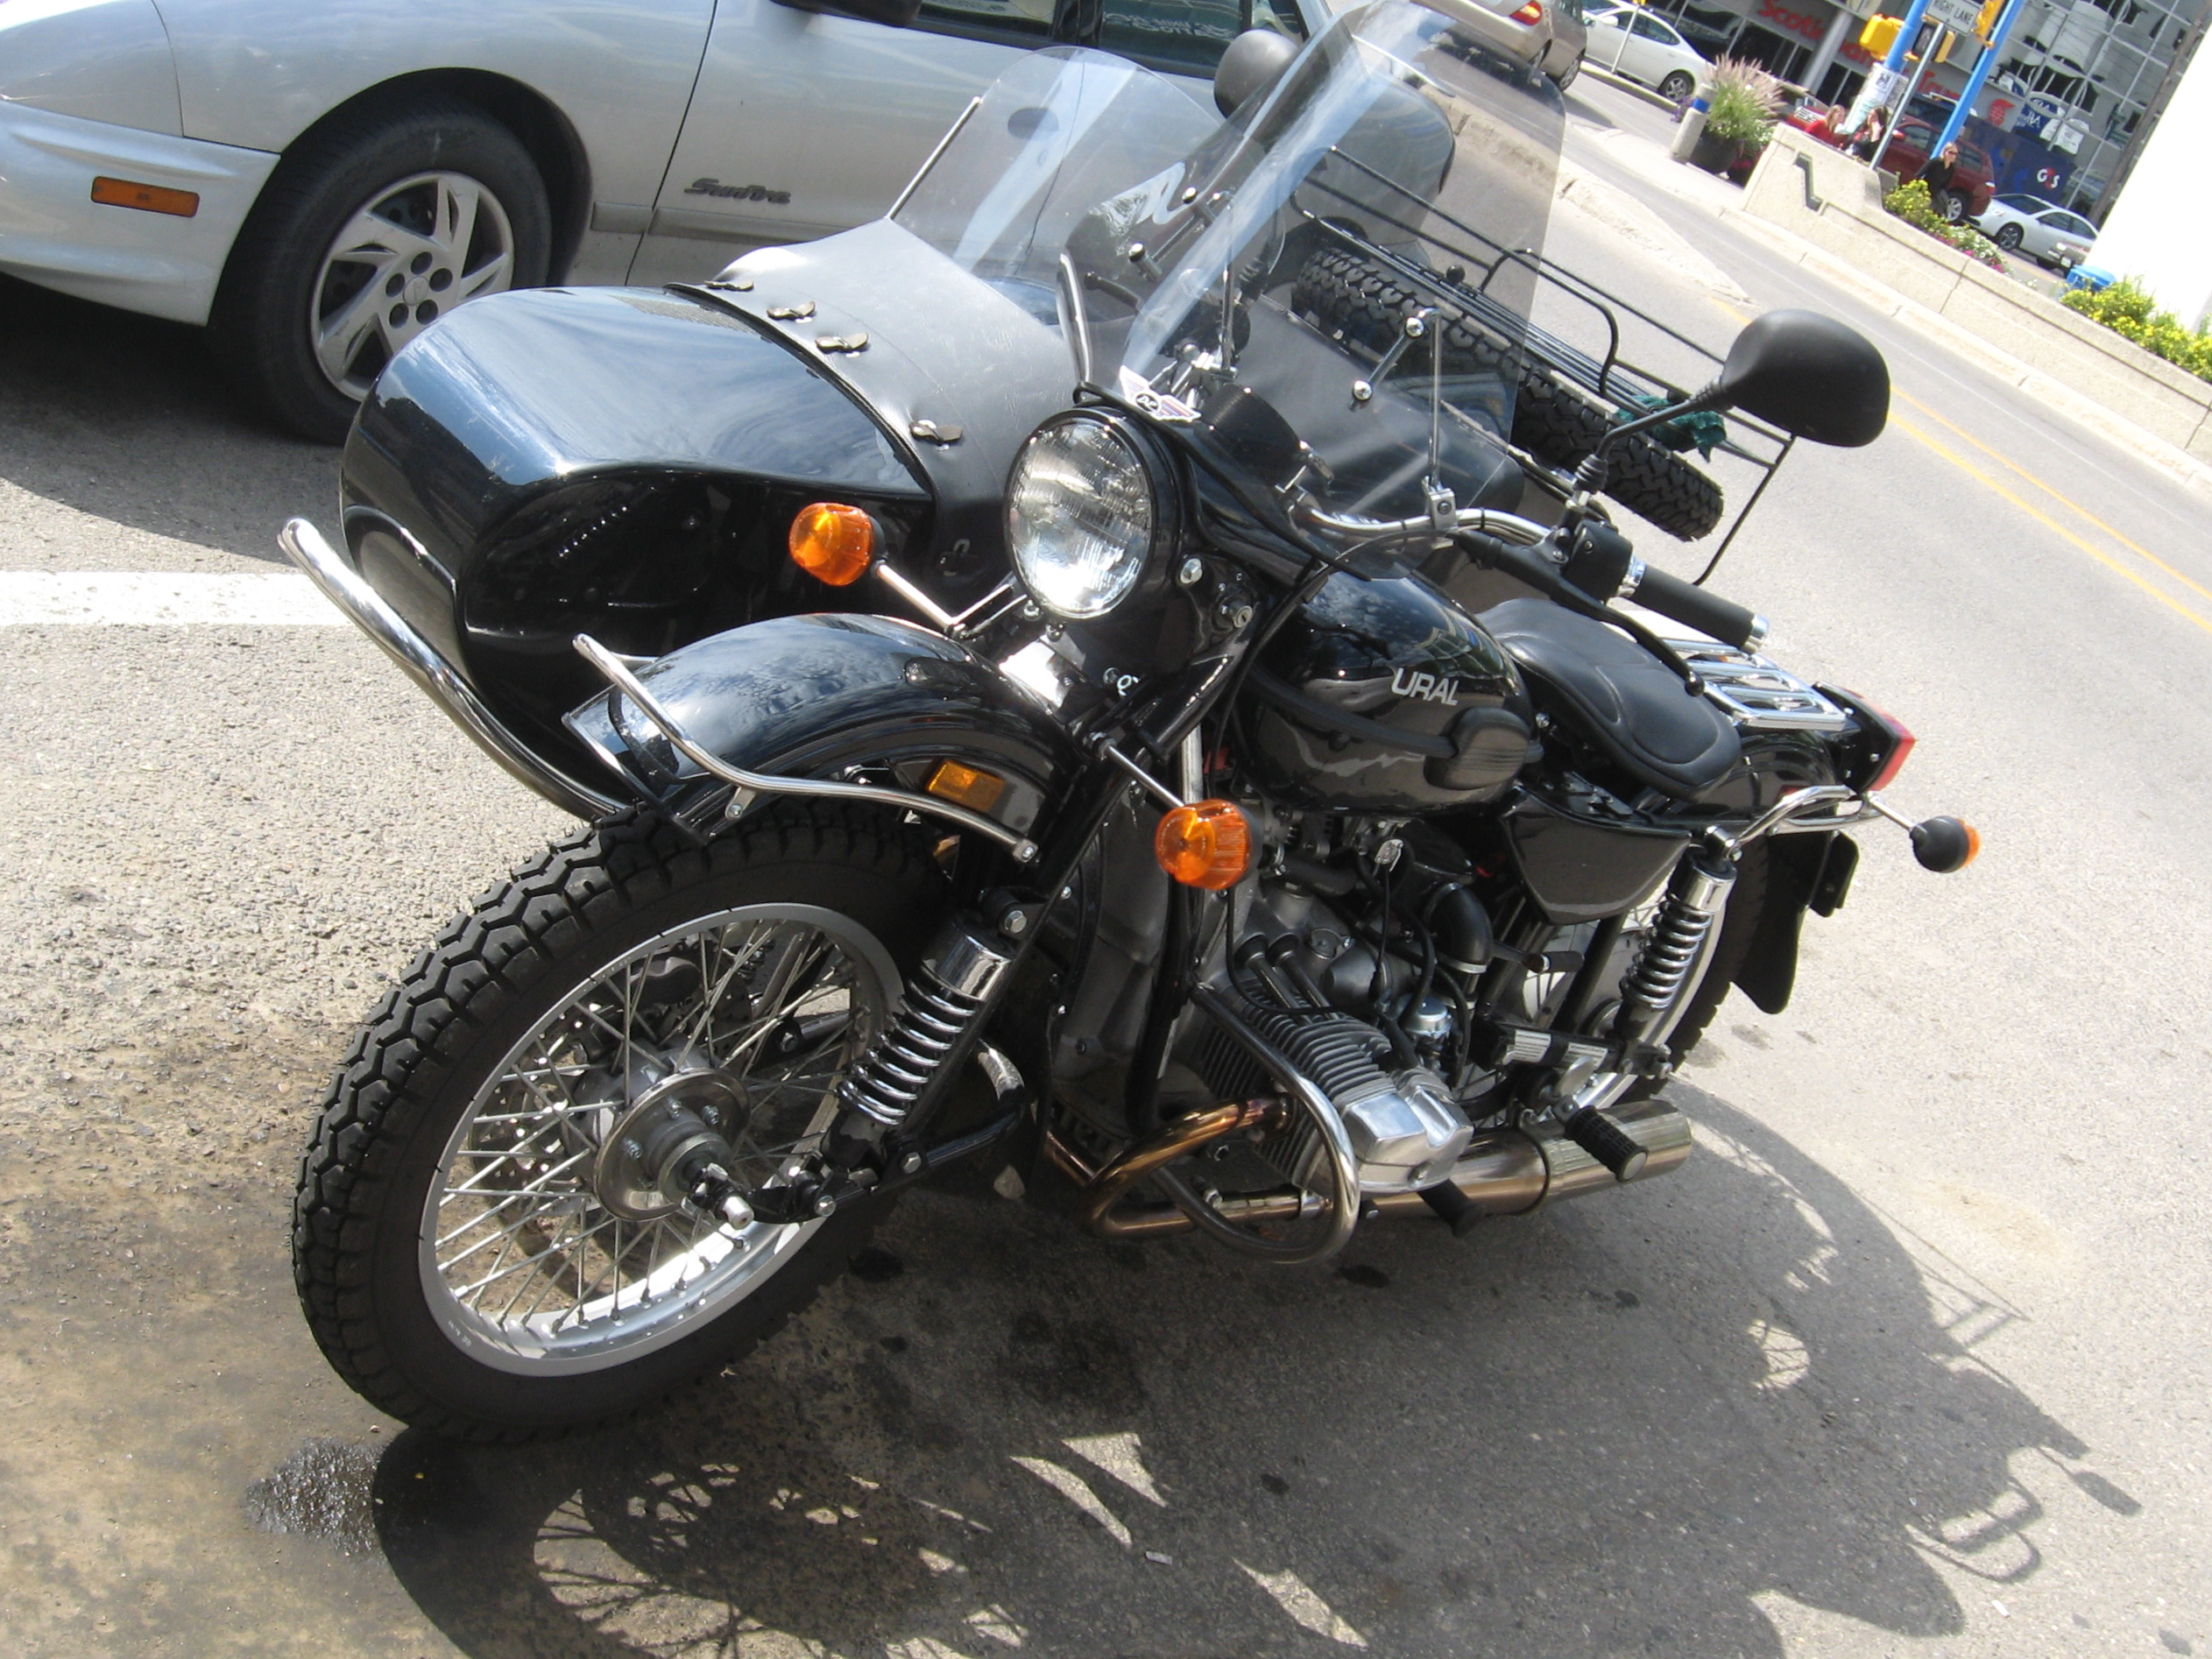 Ural M 66 with sidecar 1974 images #127366